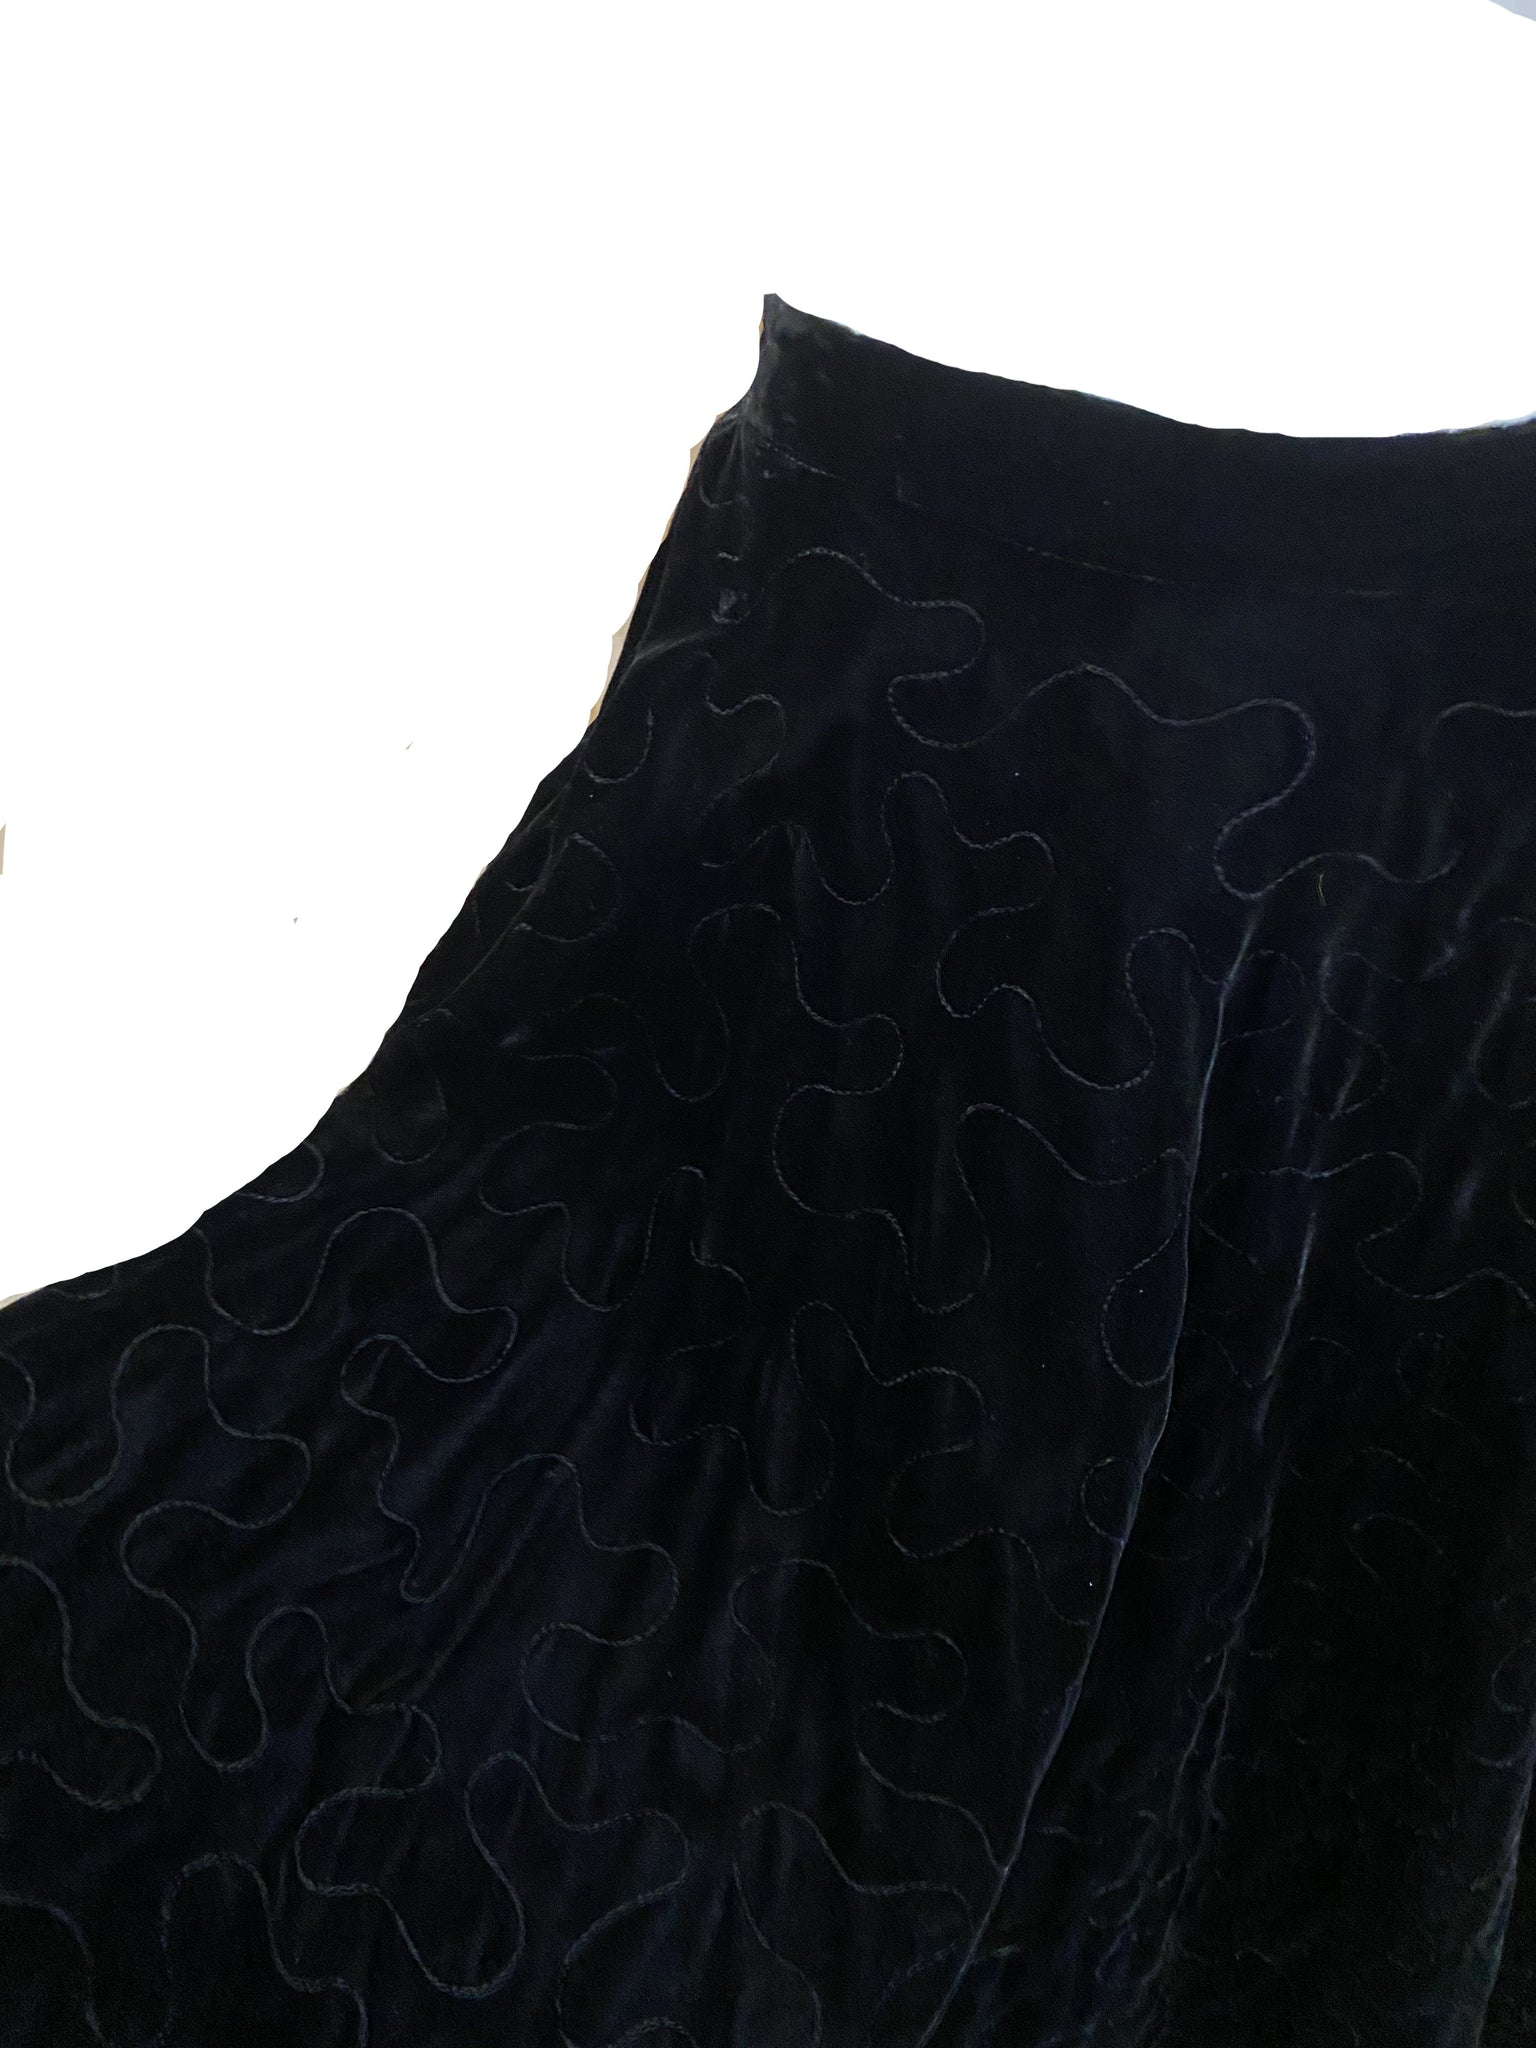 50s Black Velvet Quilted Circle Skirt CLOSE UP 3 of 5